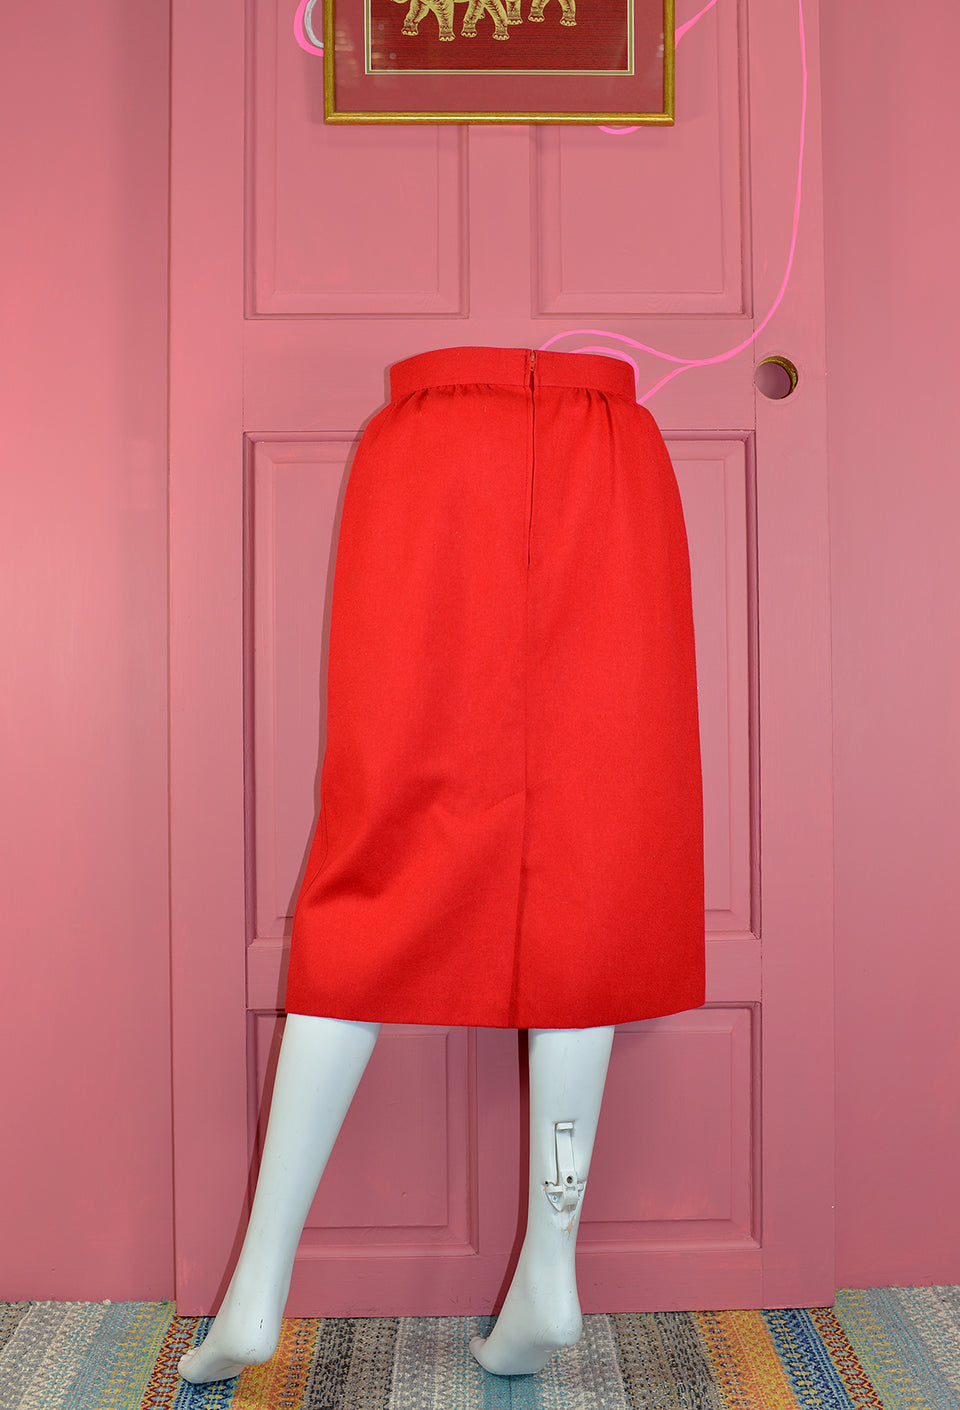 ST MICHAEL Red Pure Wool Midi Skirt with Pockets, Size S. Vintage.